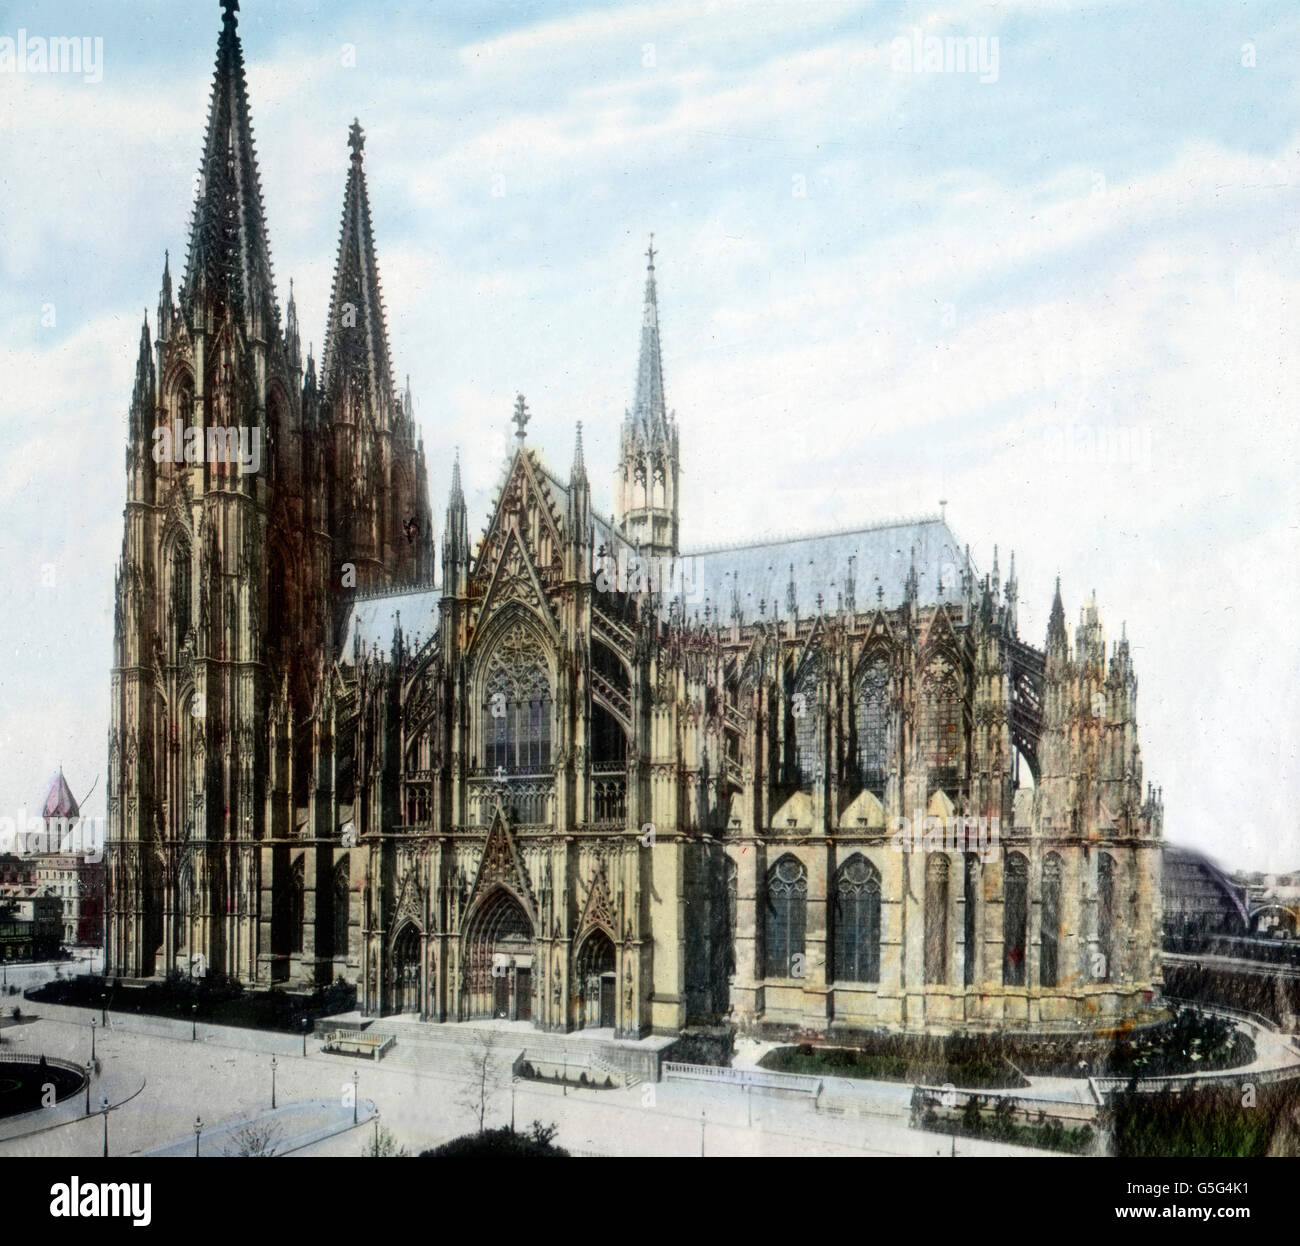 Famous Architects Of The 20Th Century der hohe dom zu köln. the famous cathedral in the city of cologne